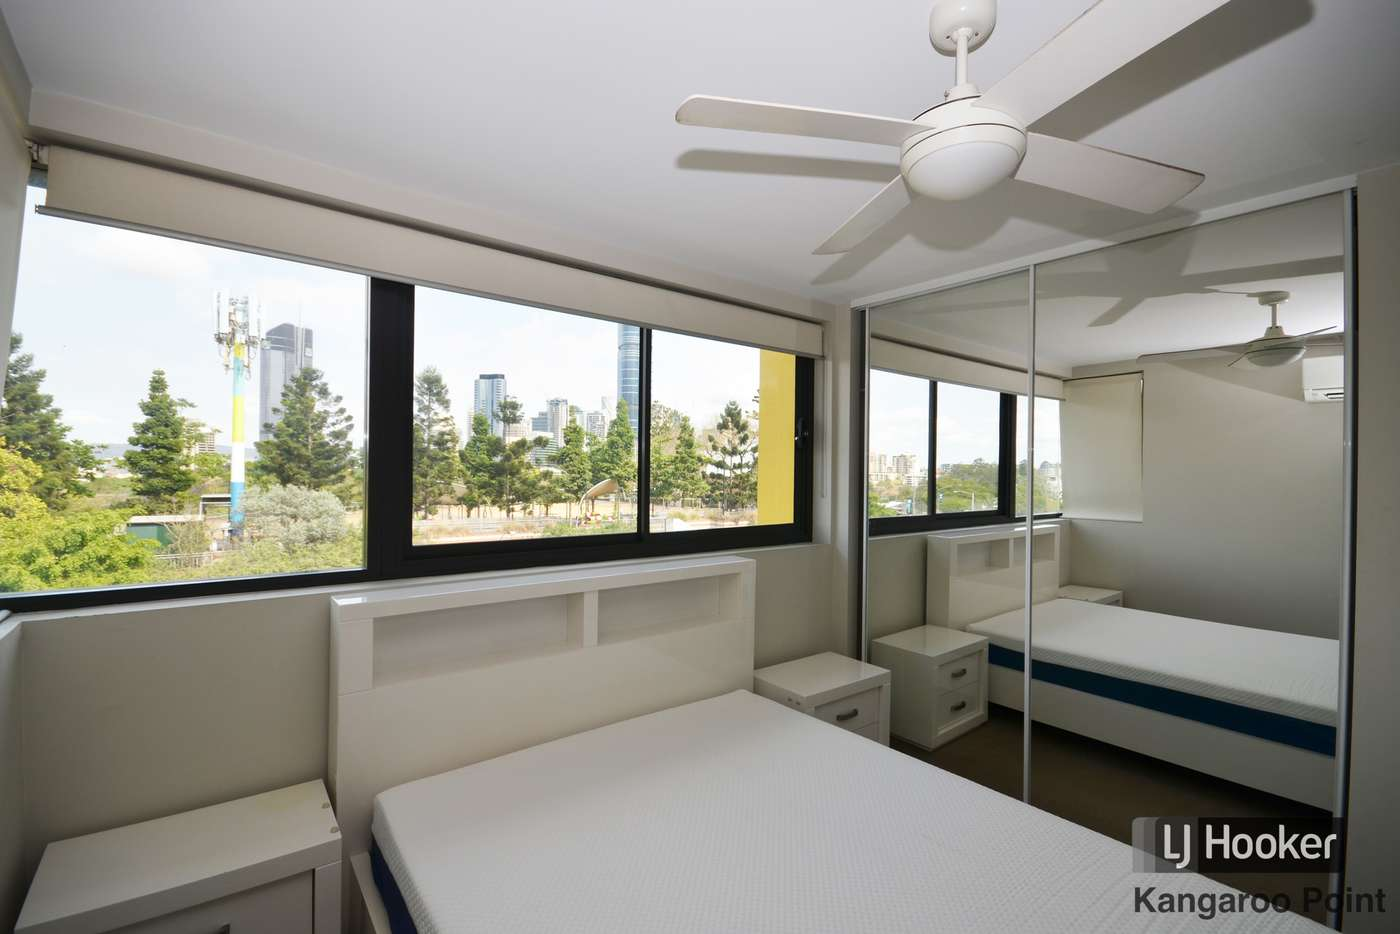 Sixth view of Homely apartment listing, 9/450 Main Street, Kangaroo Point QLD 4169